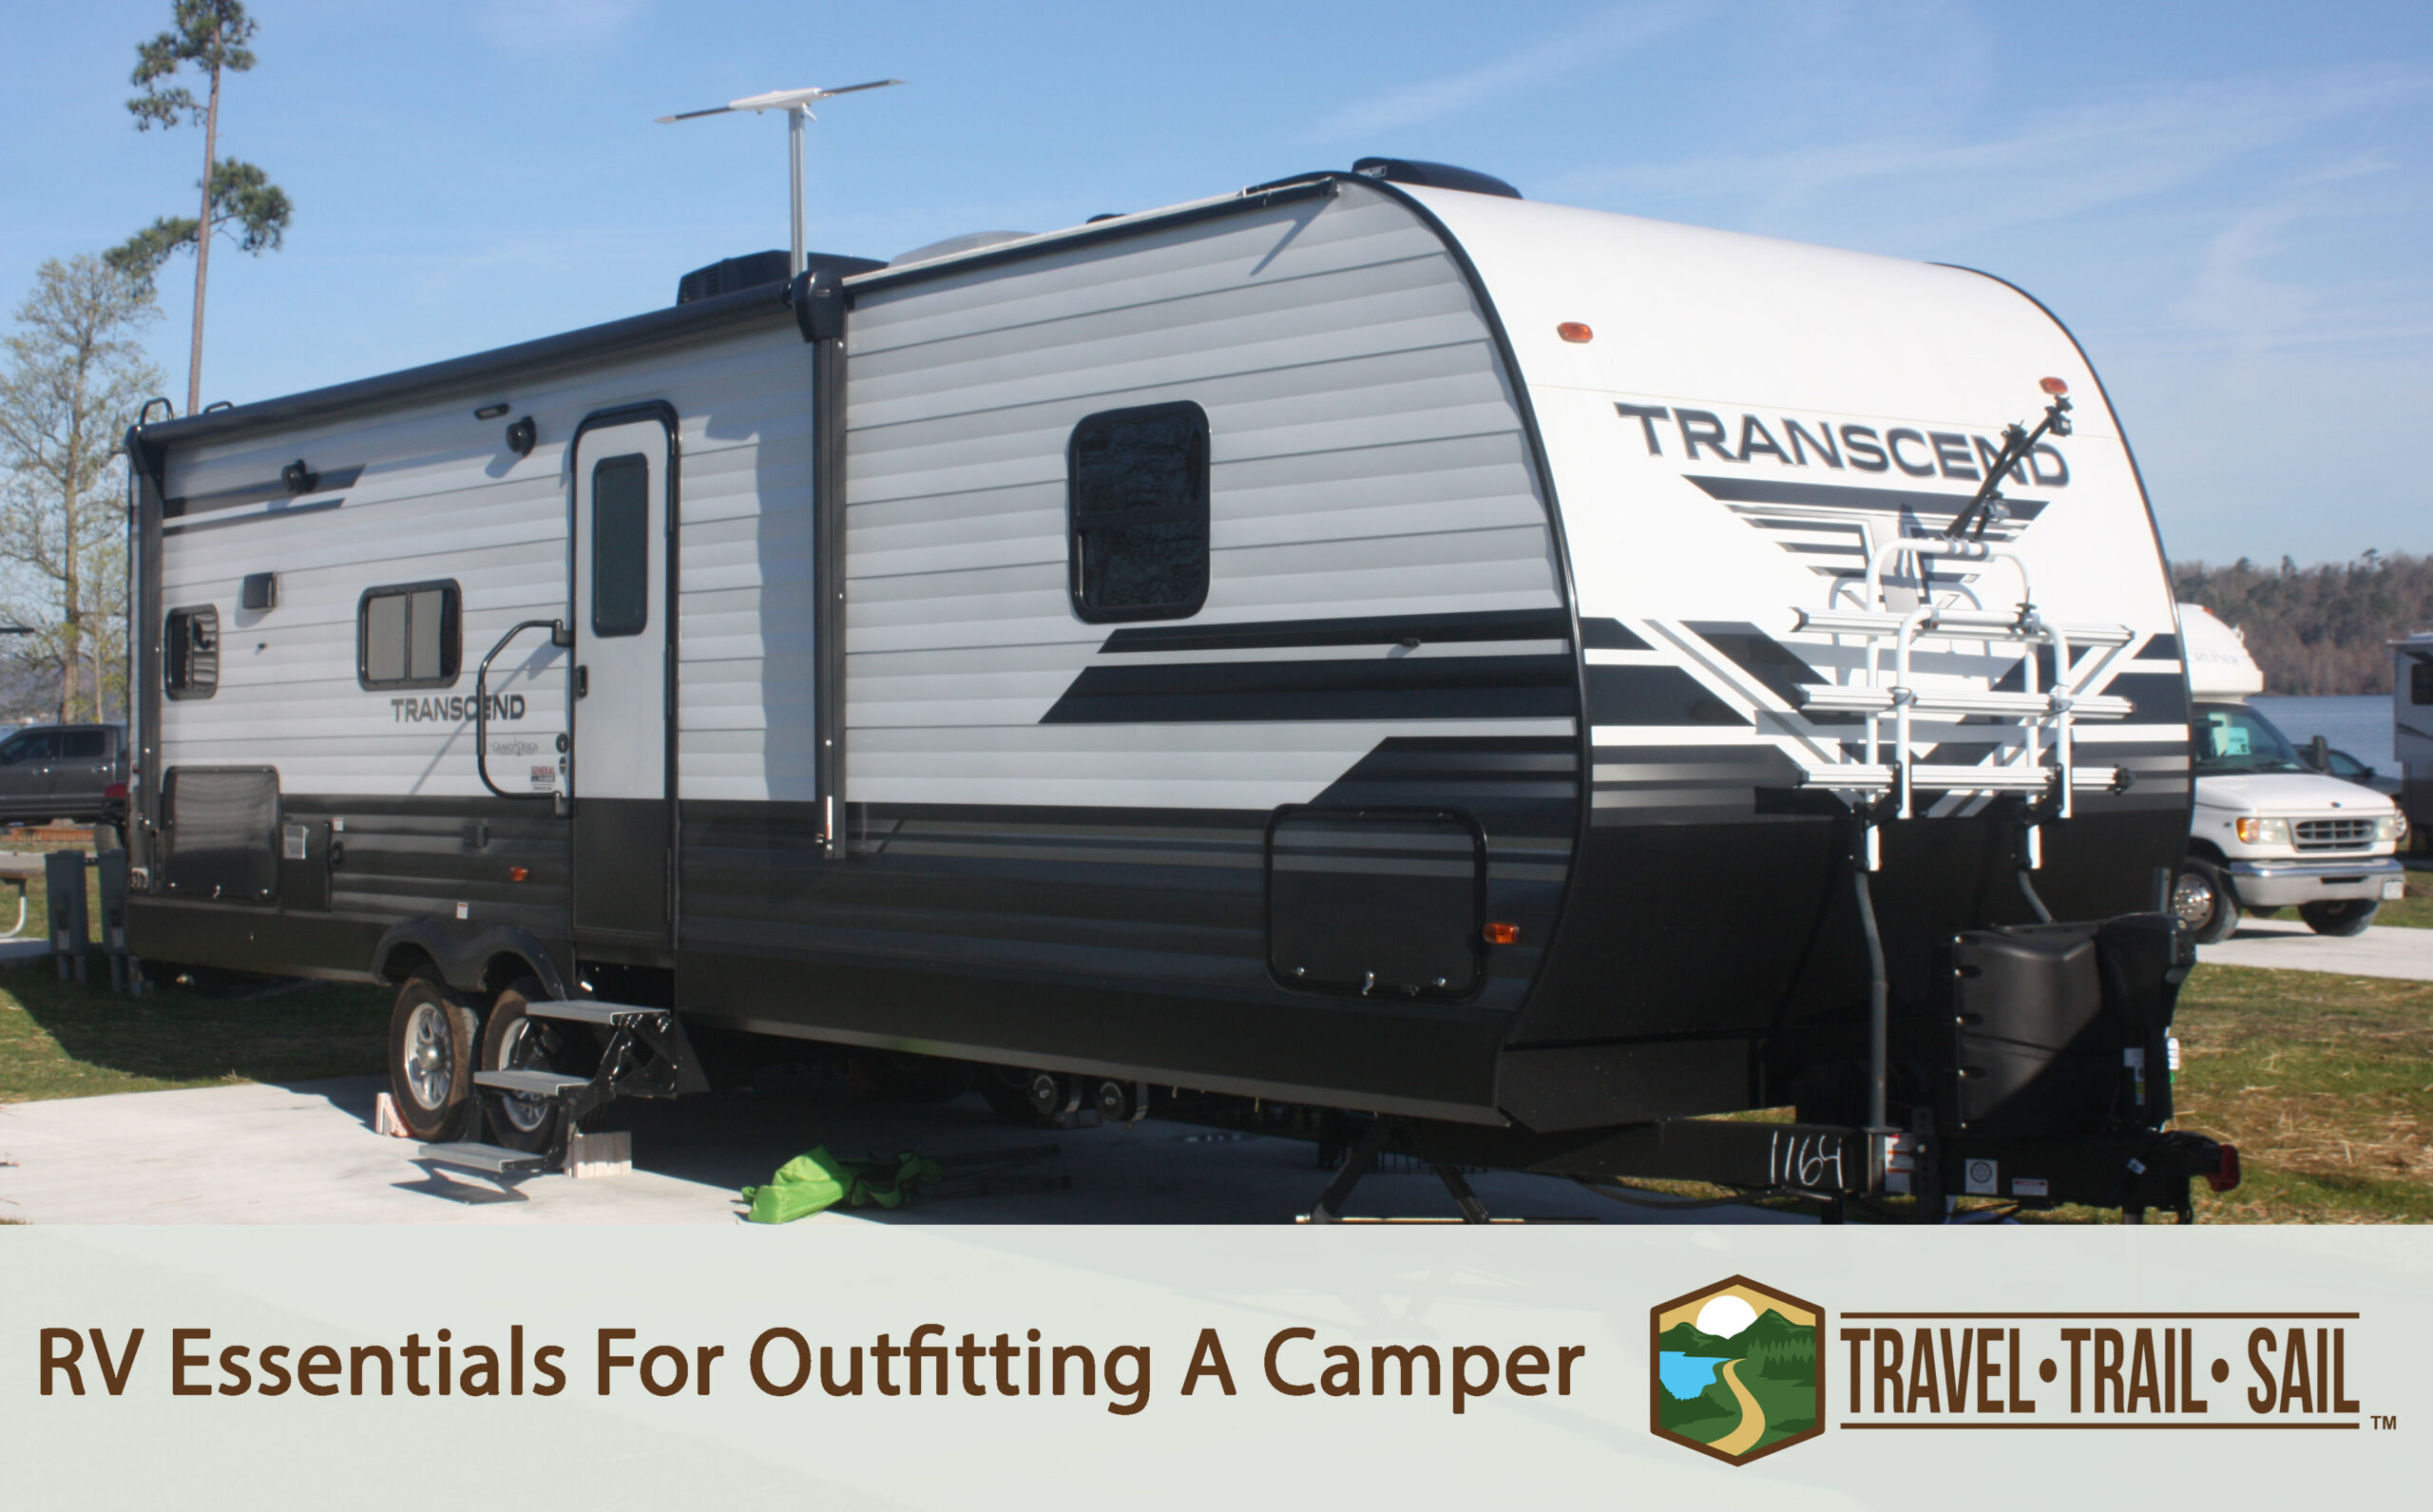 RV Essentials Outfitting A Camper